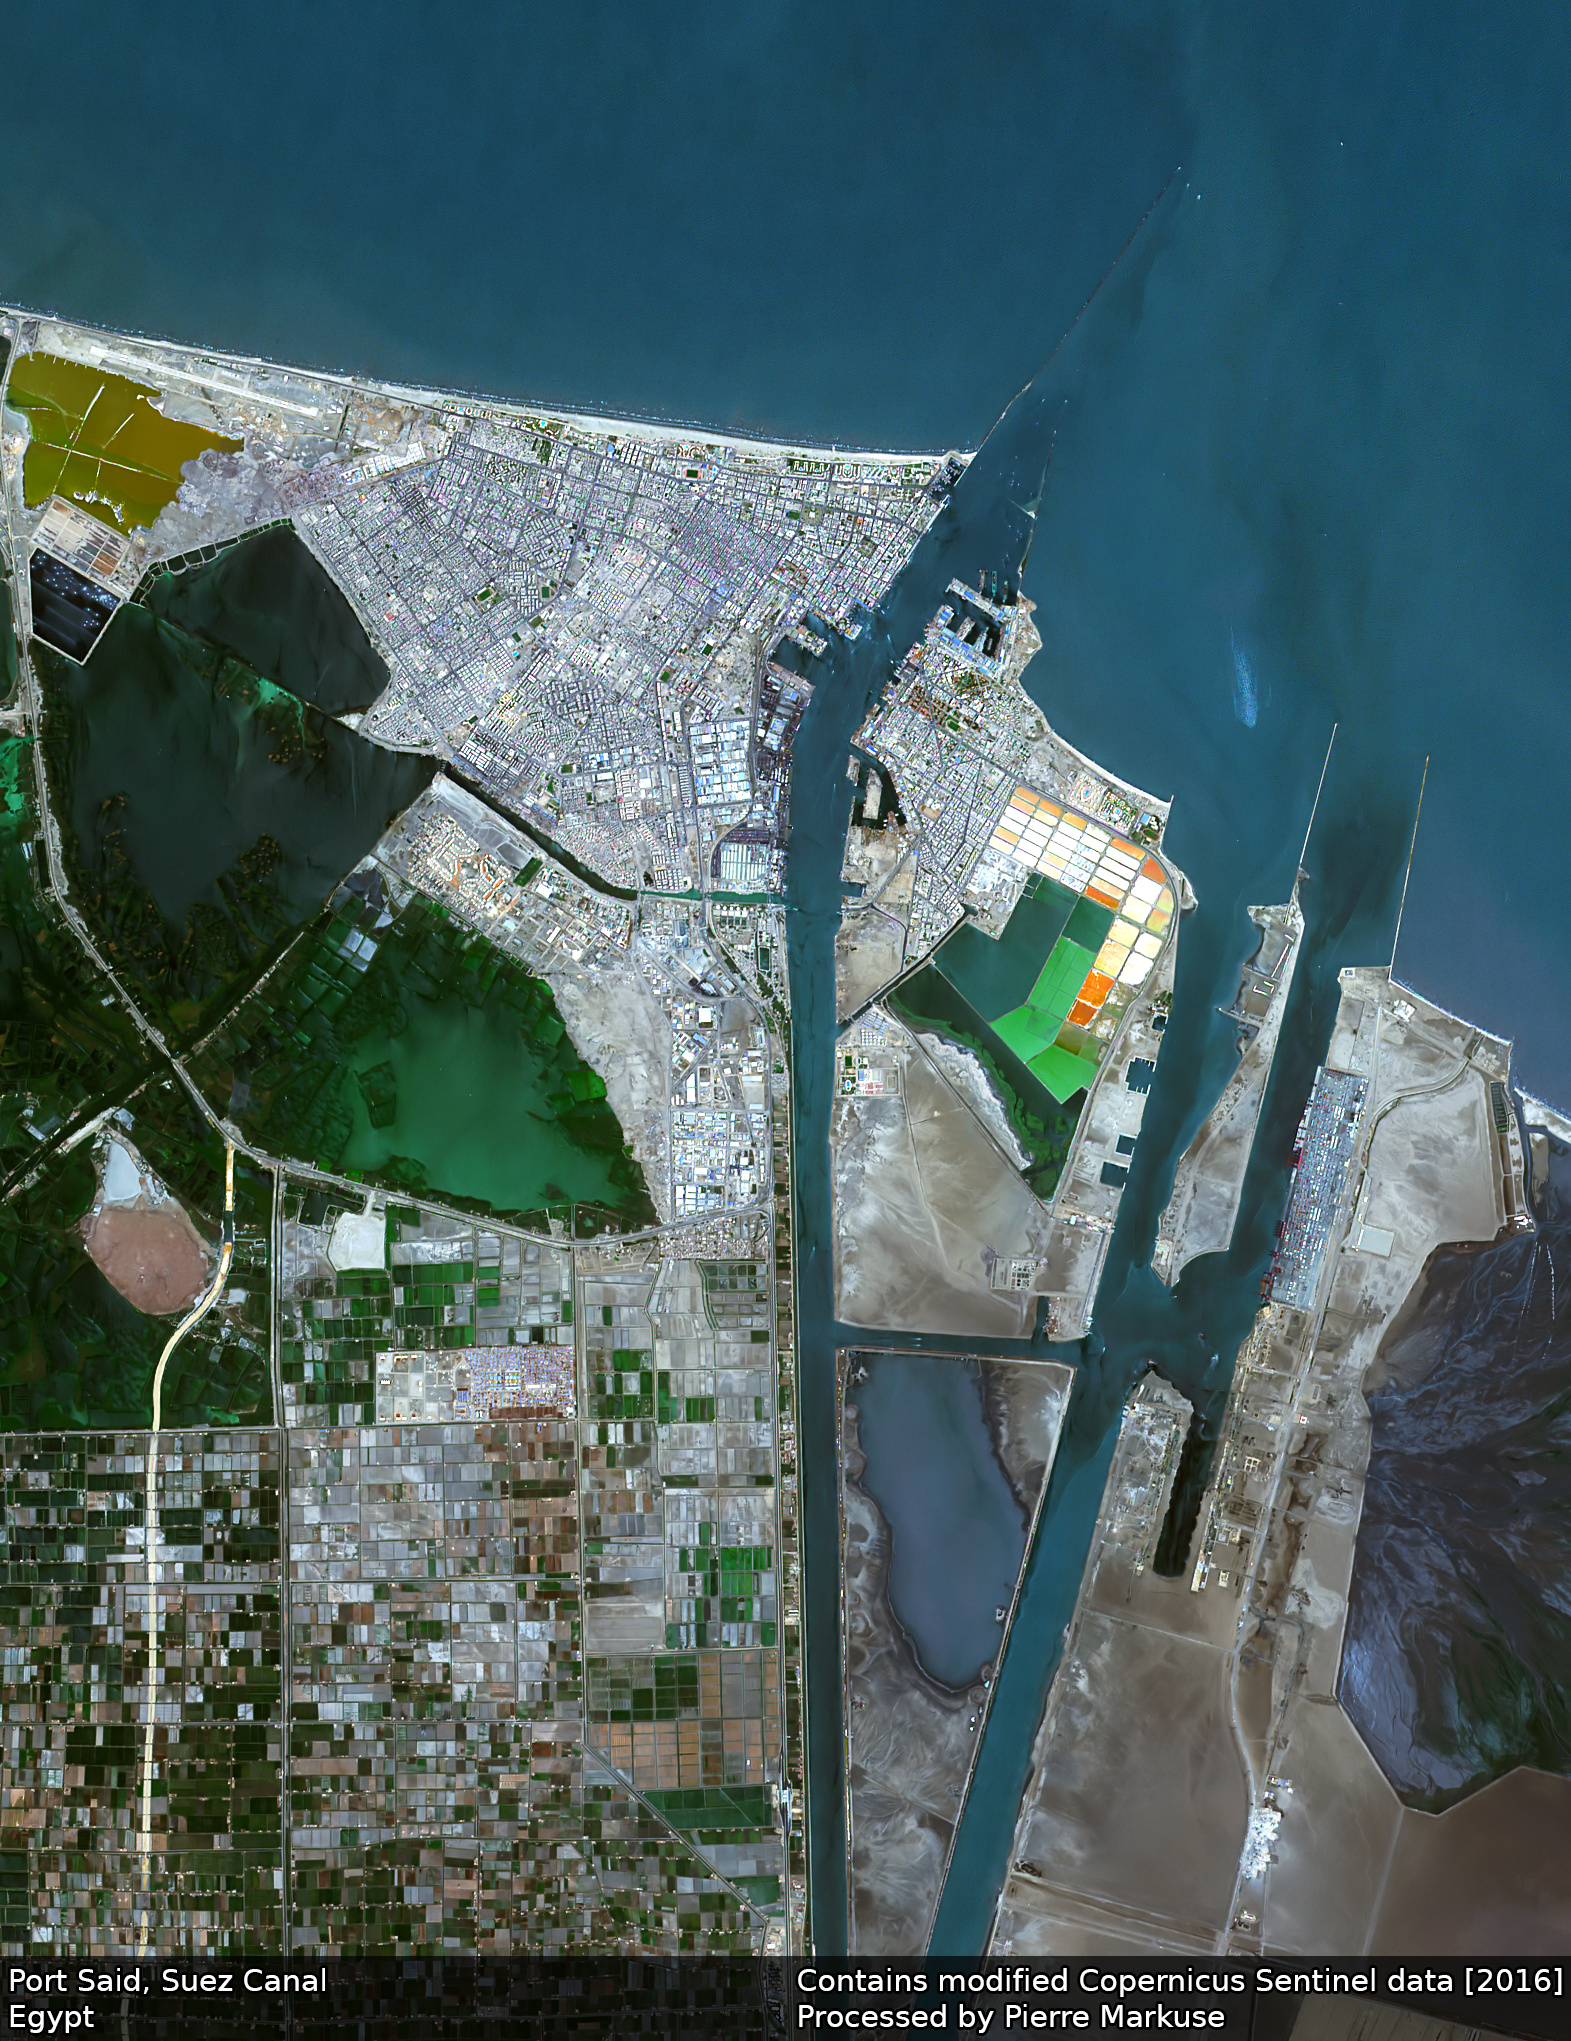 Earth from Space: Port Said, Suez Canal, Egypt